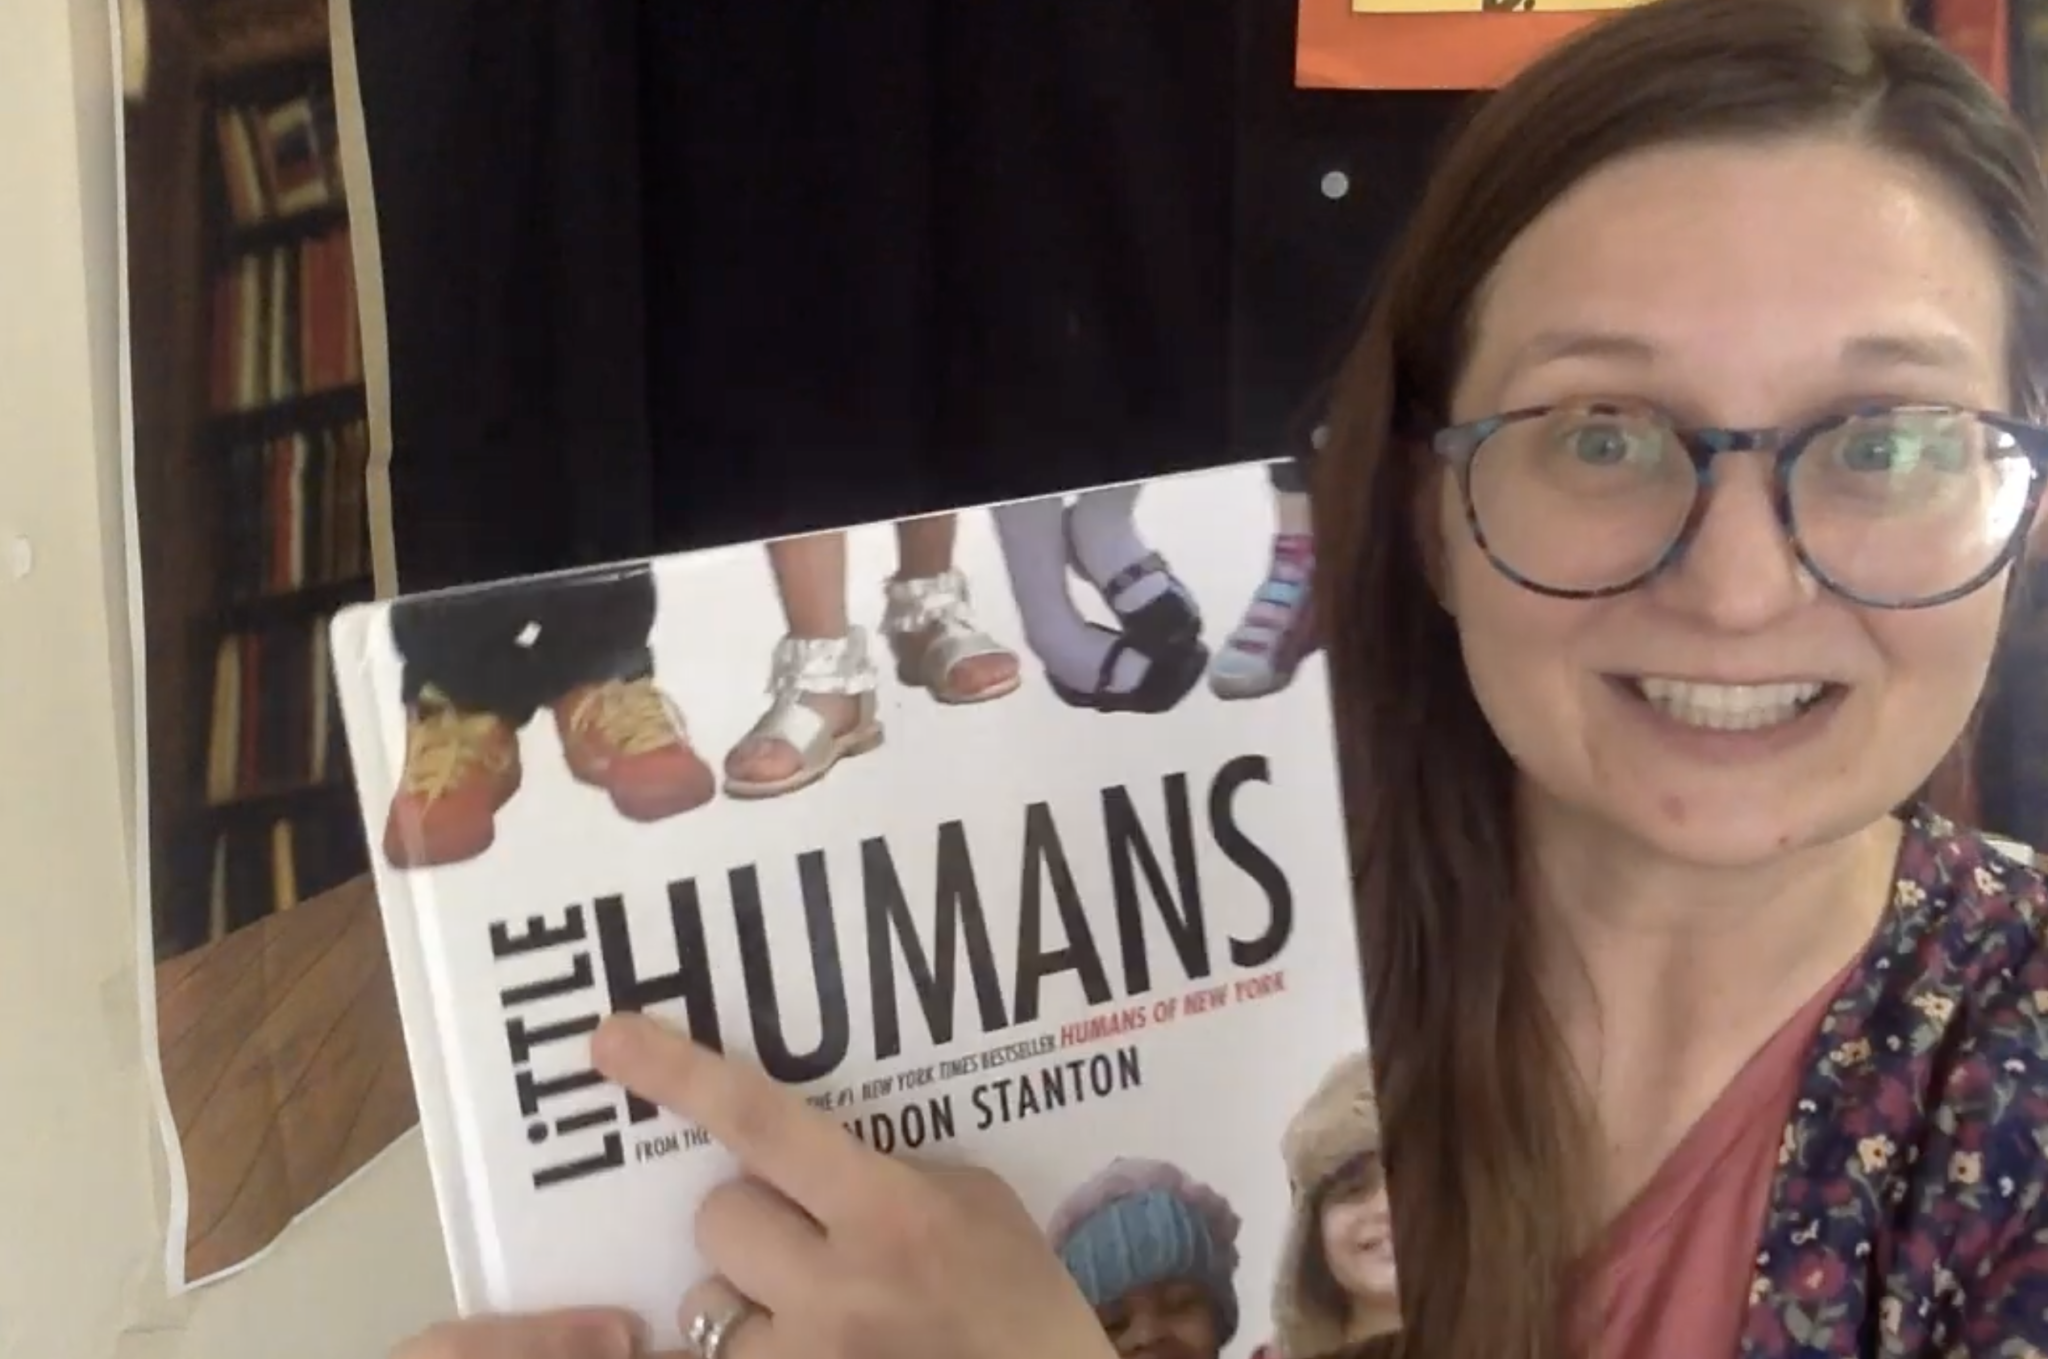 What's Your Story: Uniquely Formed - Little Humans